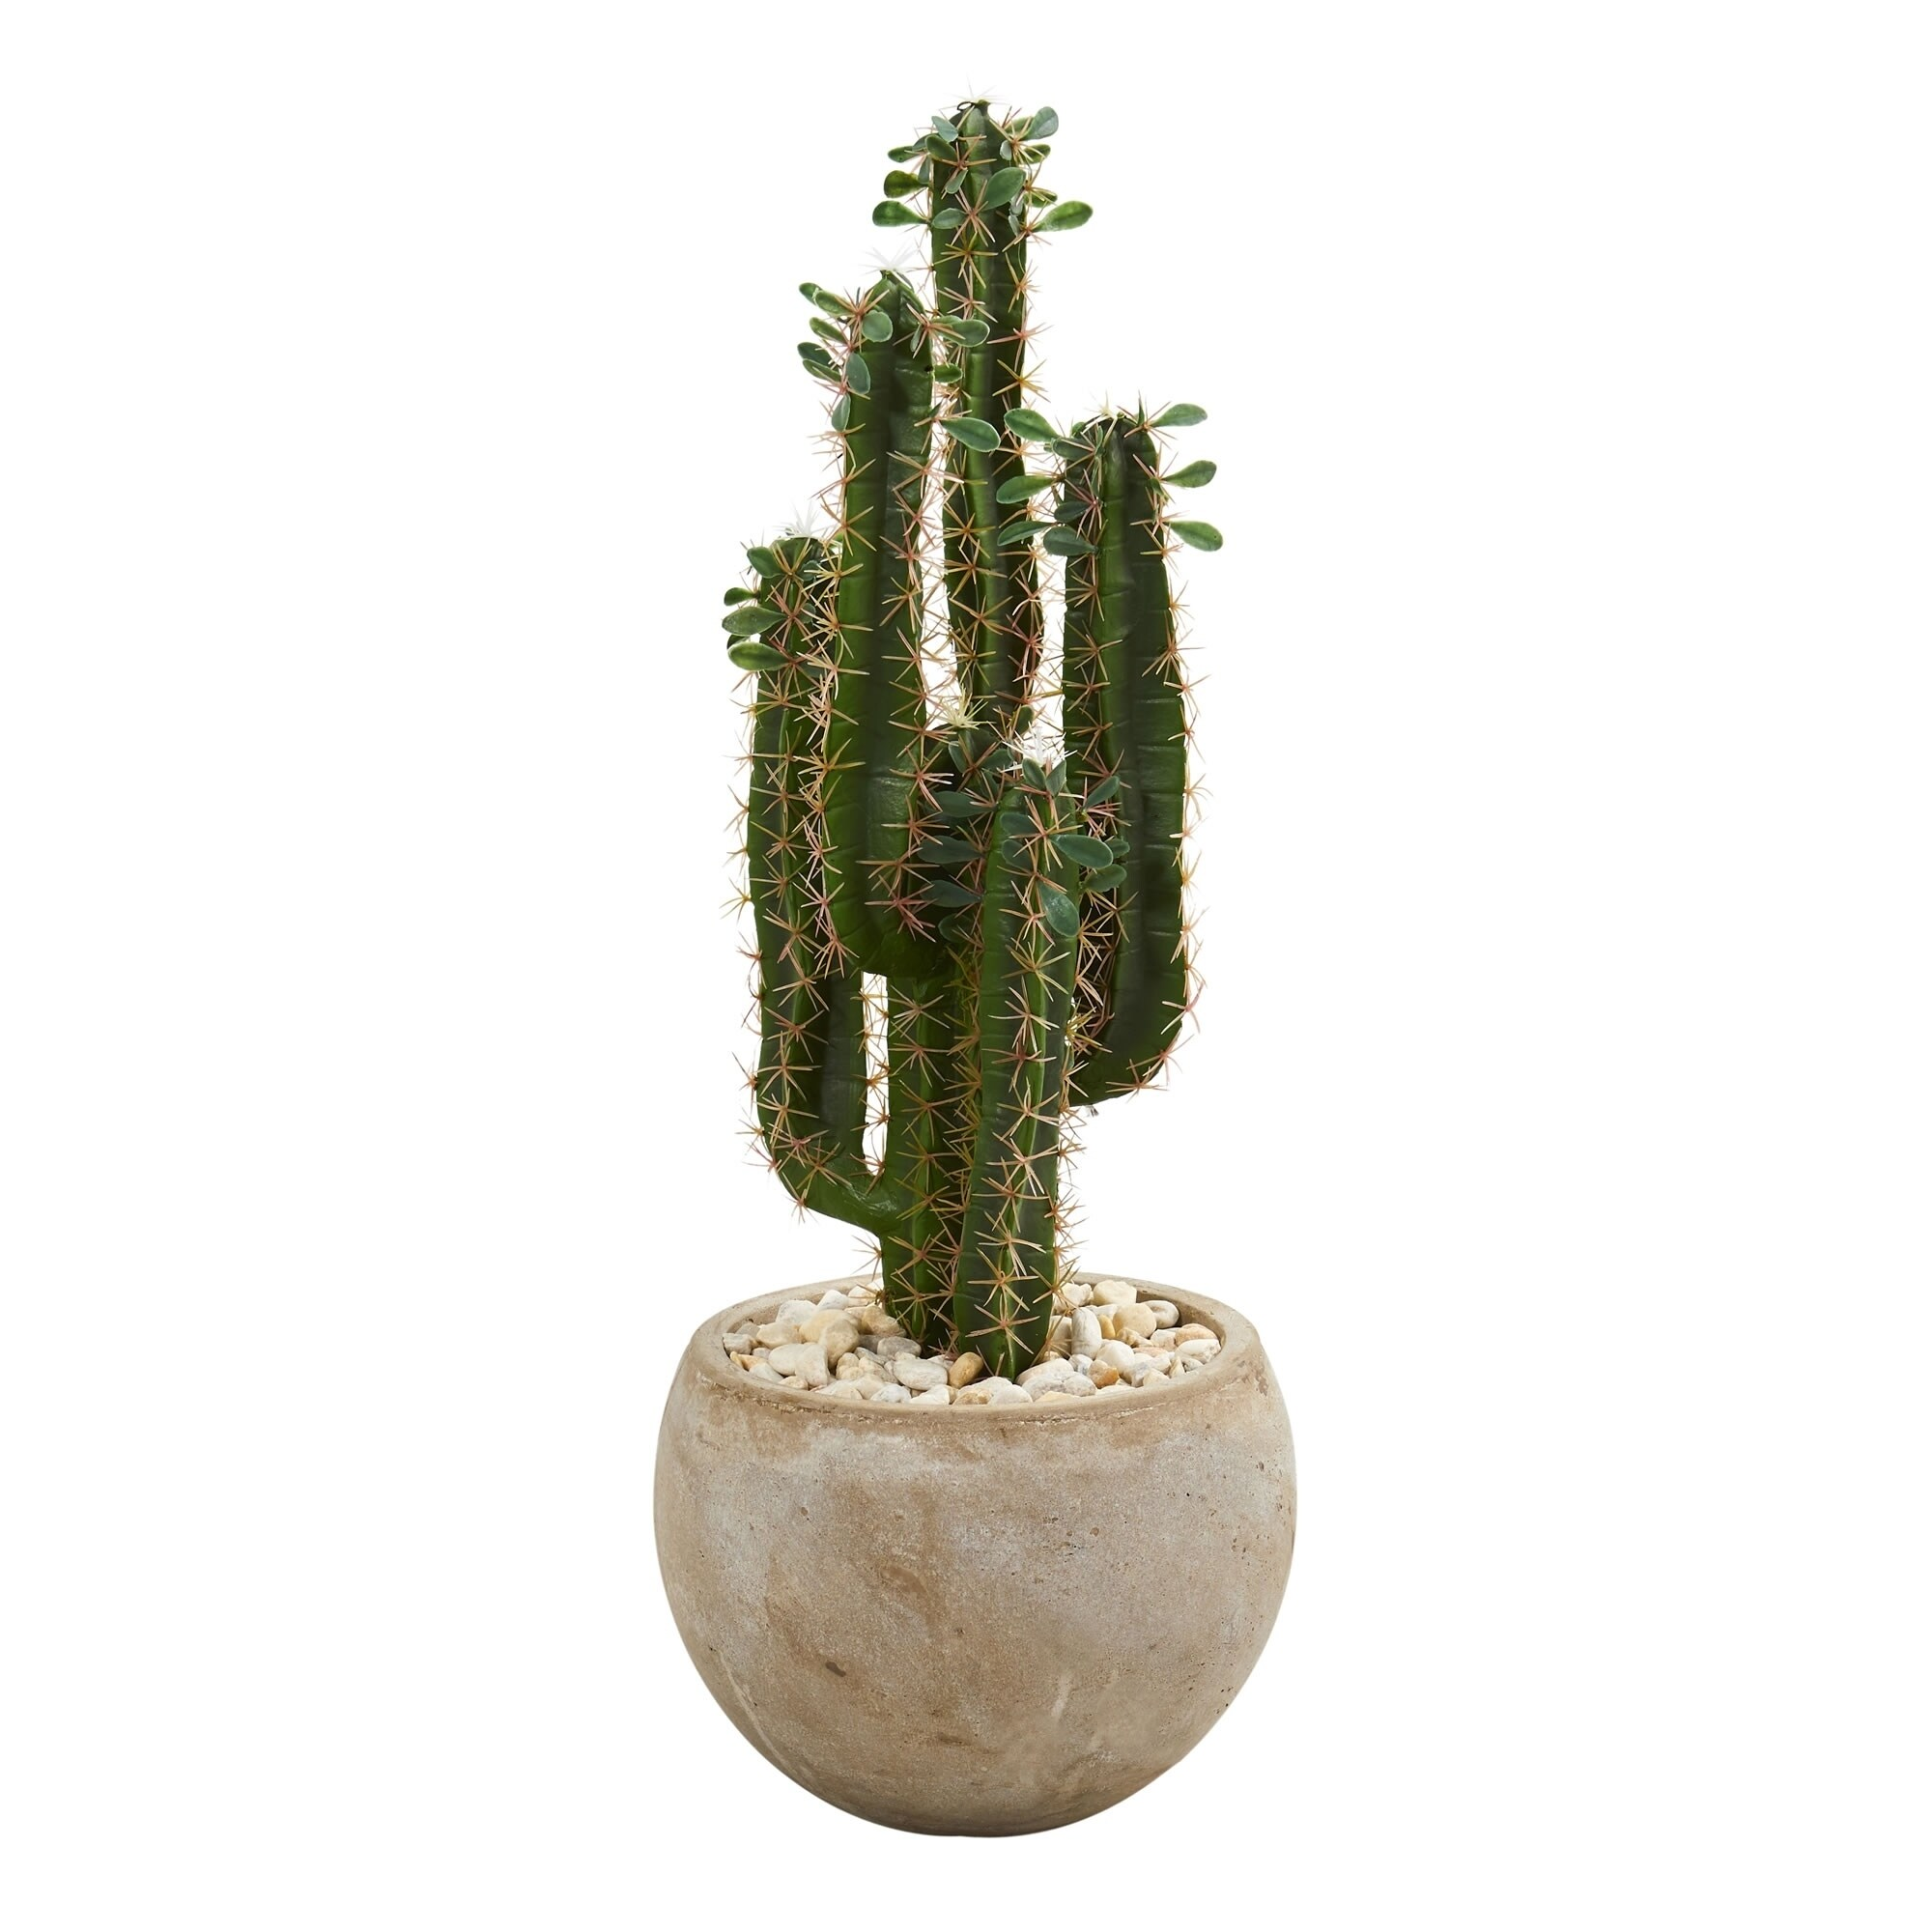 Shop For 2 5 Cactus Artificial Plant In Bowl Planter H 2 5 Ft W 10 In D 10 In Get Free Shipping On Everything At Overstock Your Online Home Decor Outlet Store Get 5 In Rewards With Club O 20942342